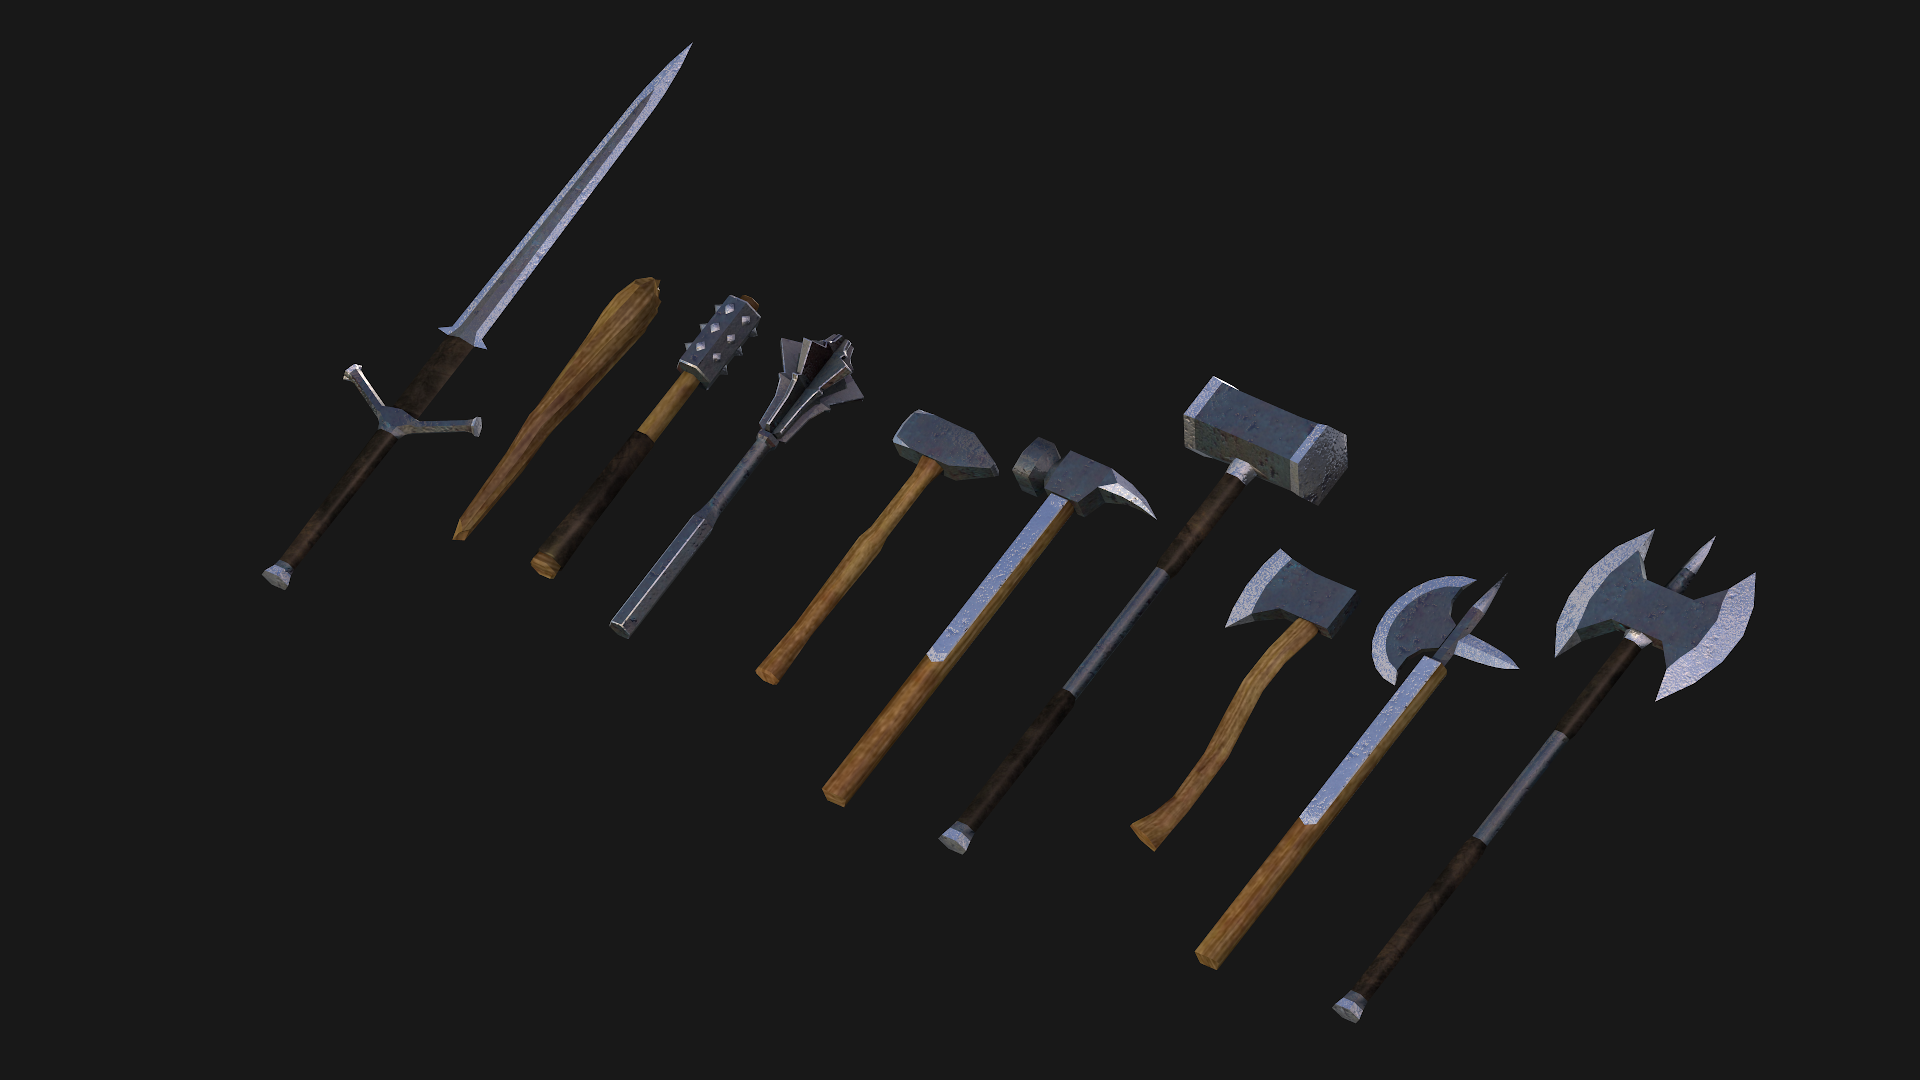 Rendering of ten plain martial weapons